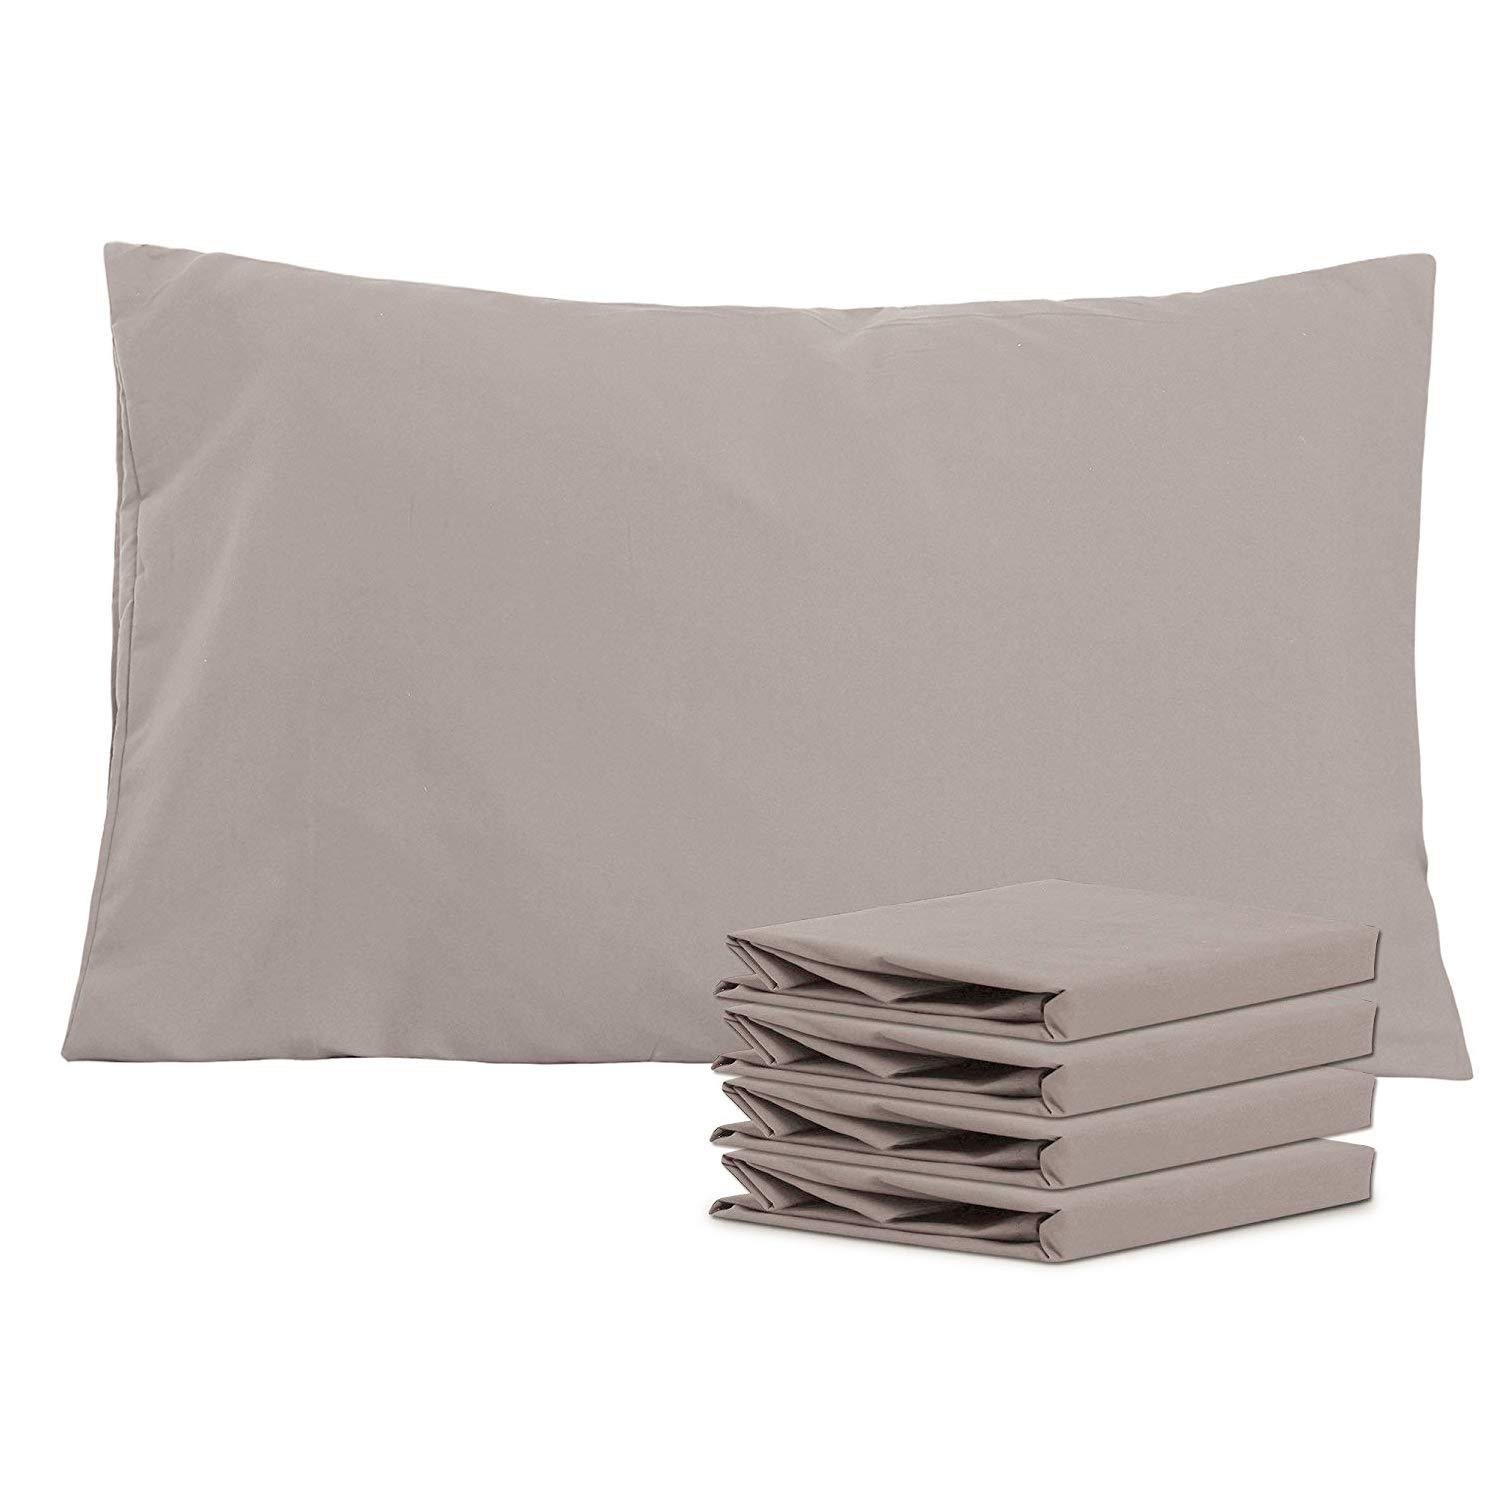 NTBAY 100/% Brushed Microfiber Pillowcases Set of 4 Stain Resistant Soft and Cozy Black 50x75 cm Anti Wrinkle